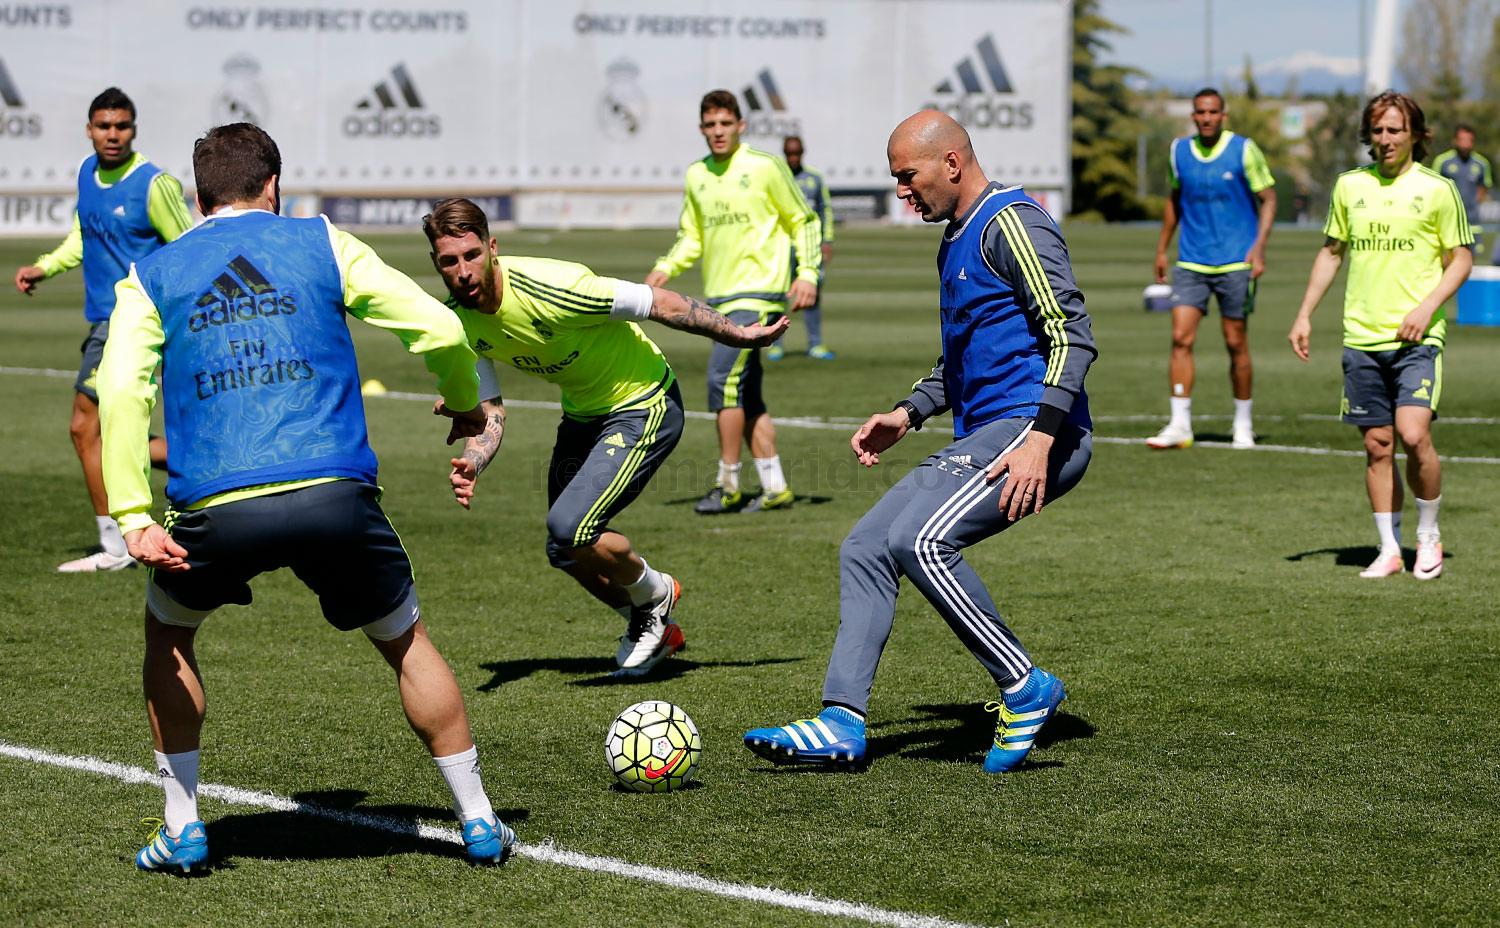 Real Madrid - Entrenamiento del Real Madrid - 18-04-2016